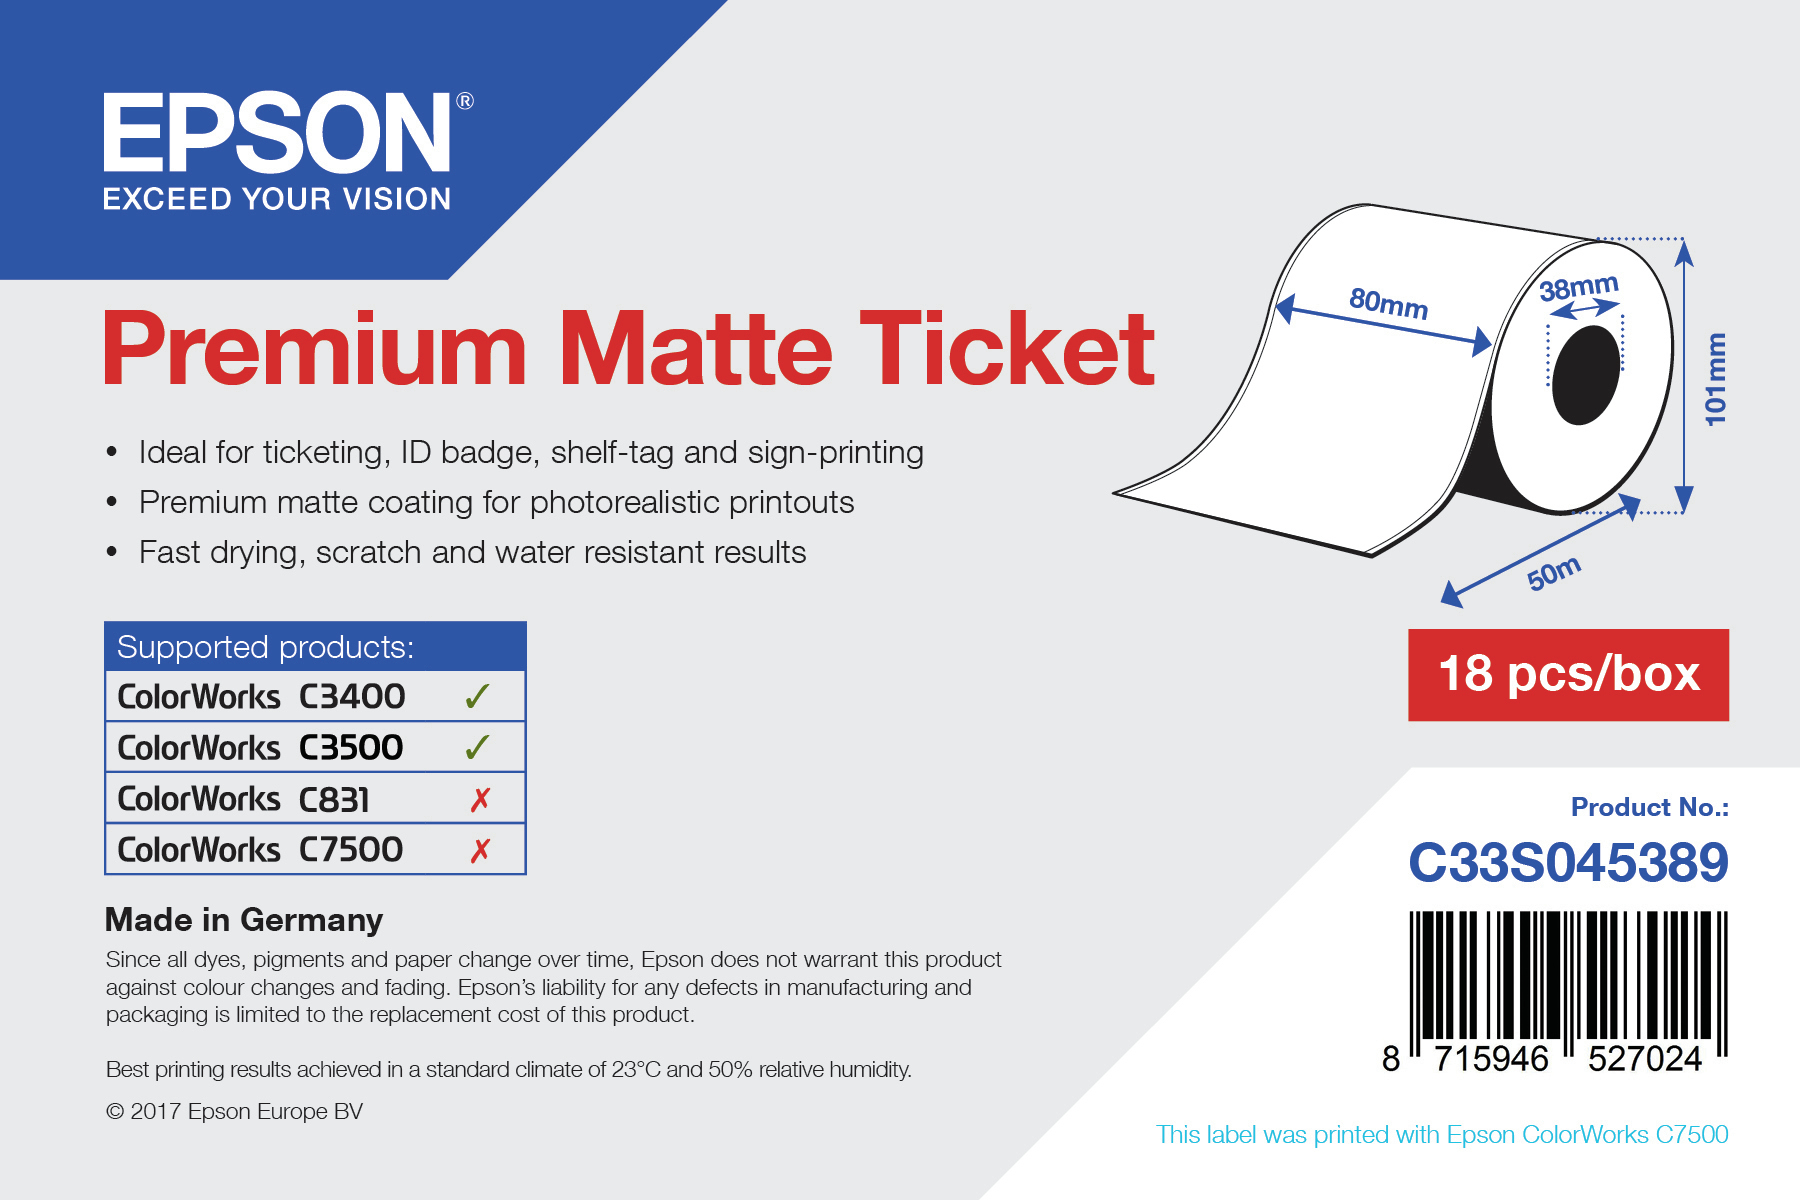 Epson Premium Matte Ticket - Roll: 80mm x 50m